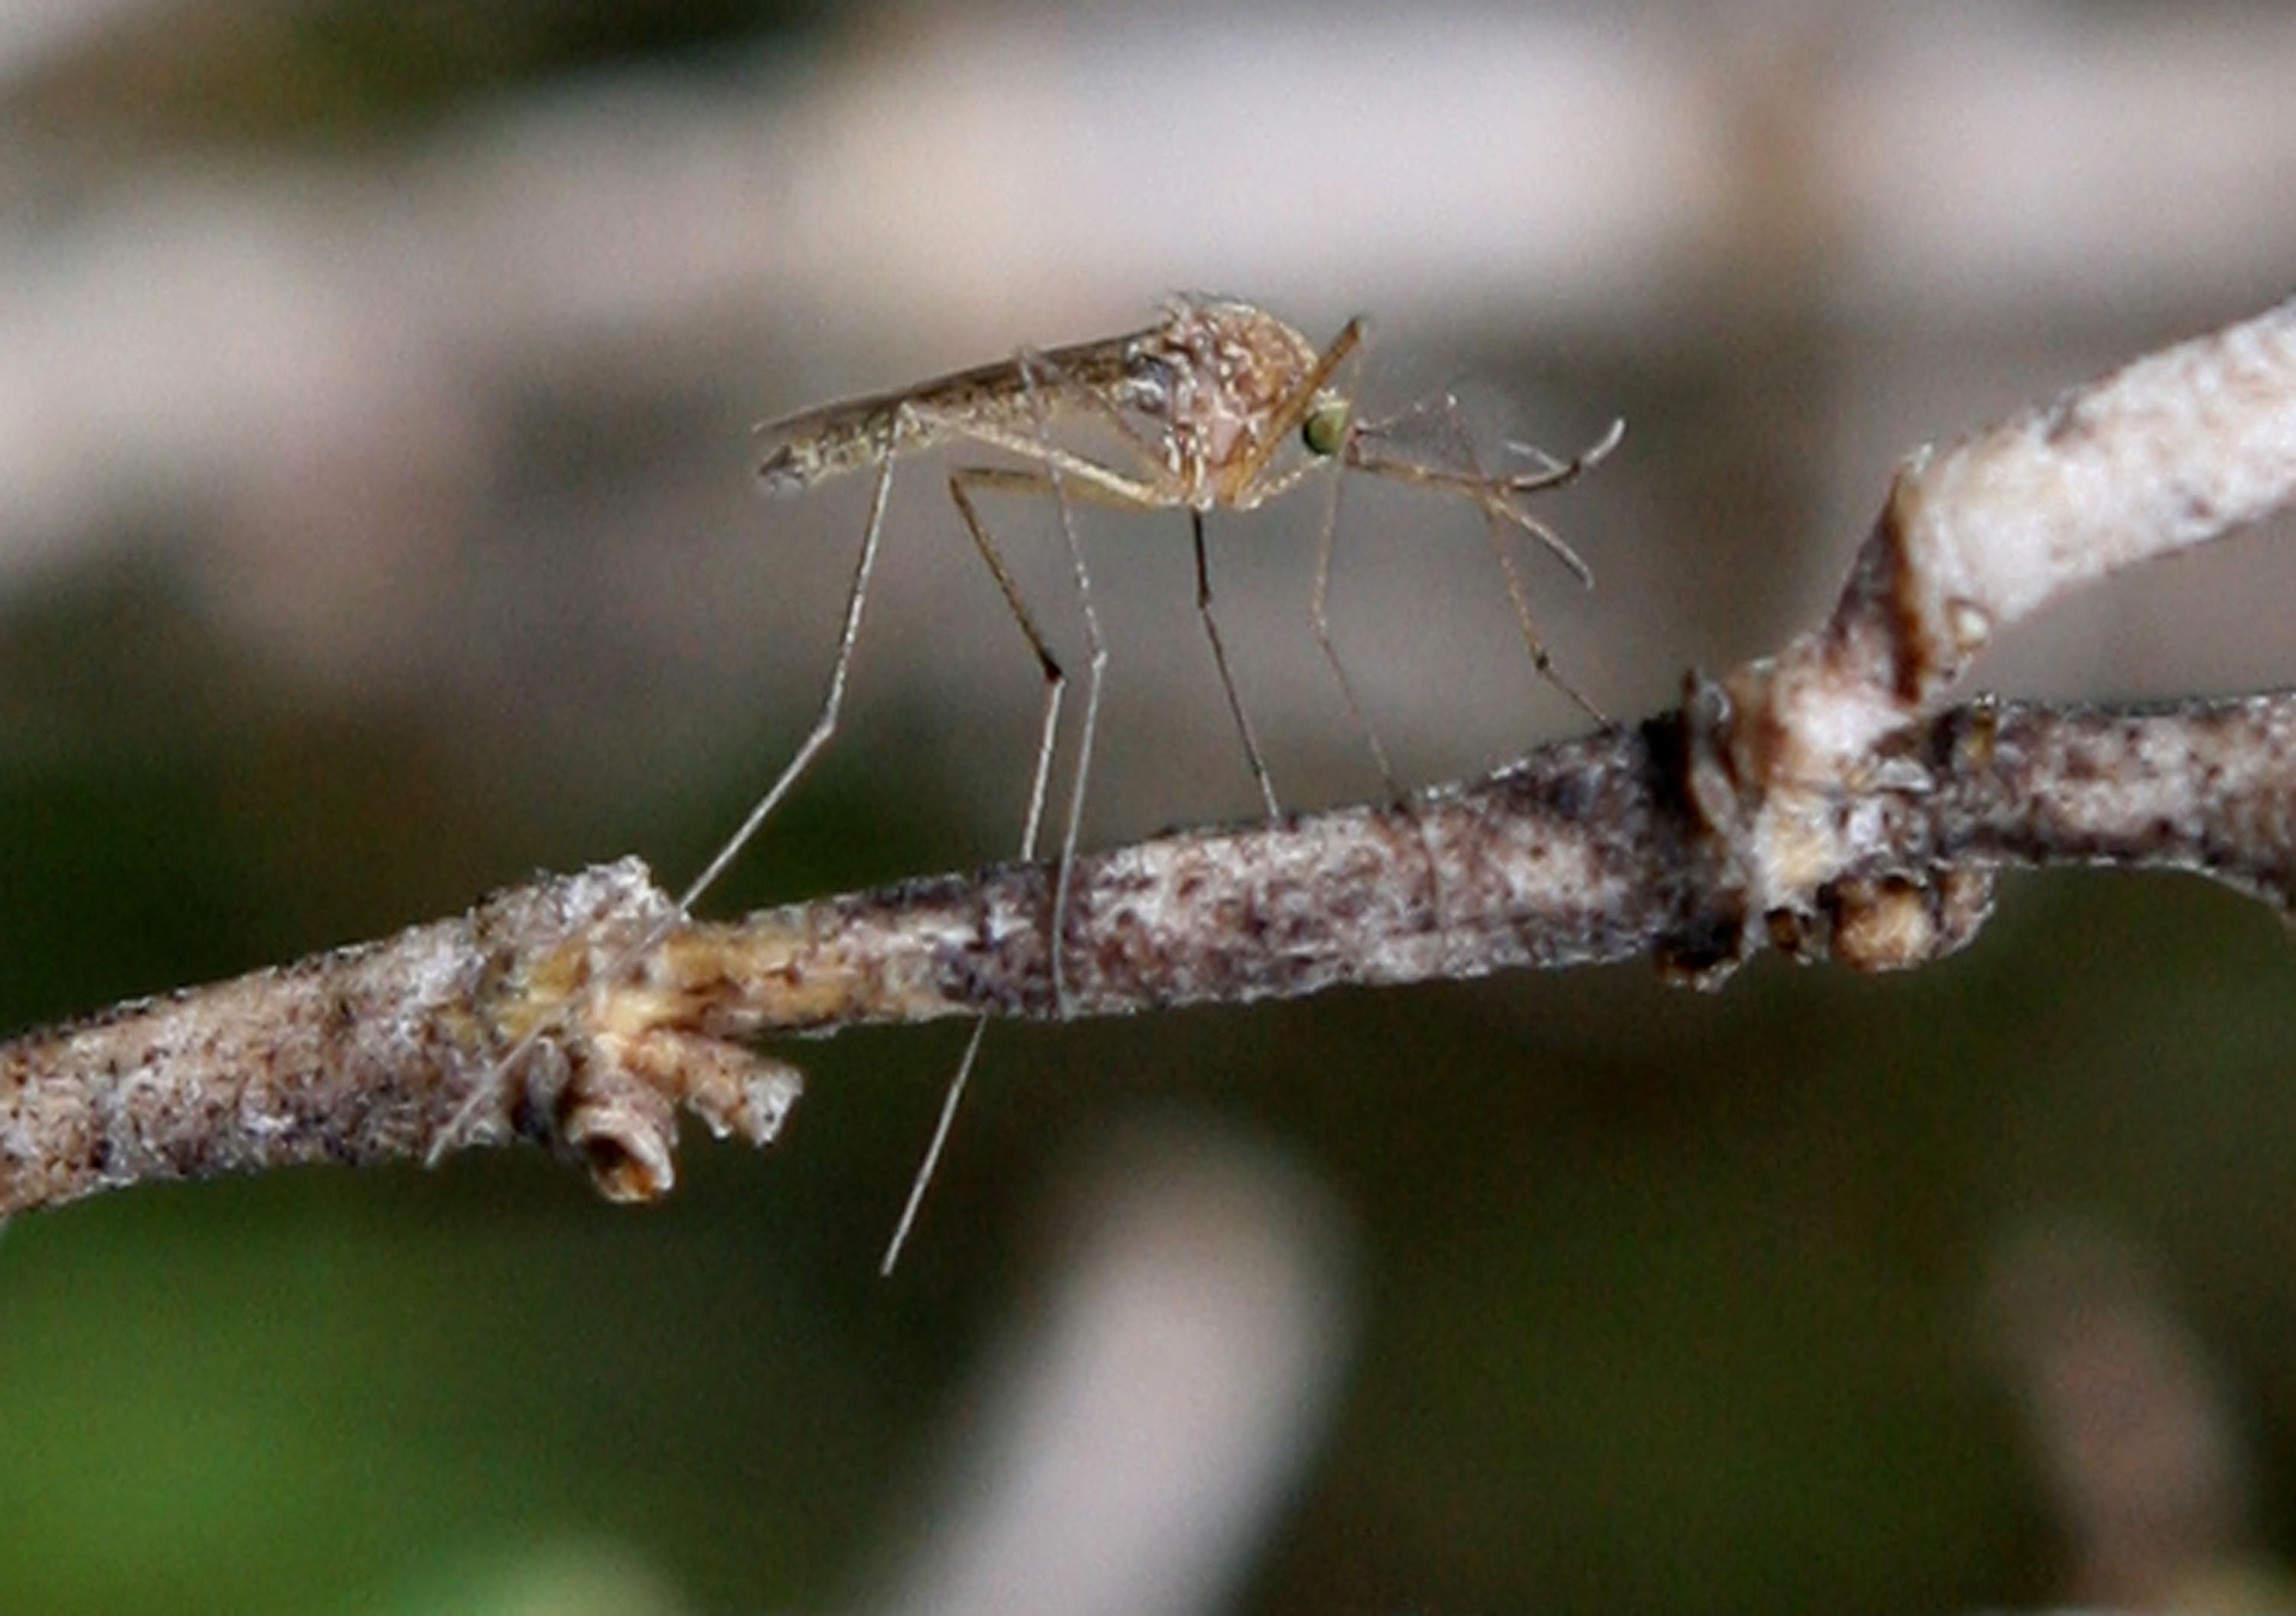 D.C. among cities where you're more likely to get bitten by mosquitoes